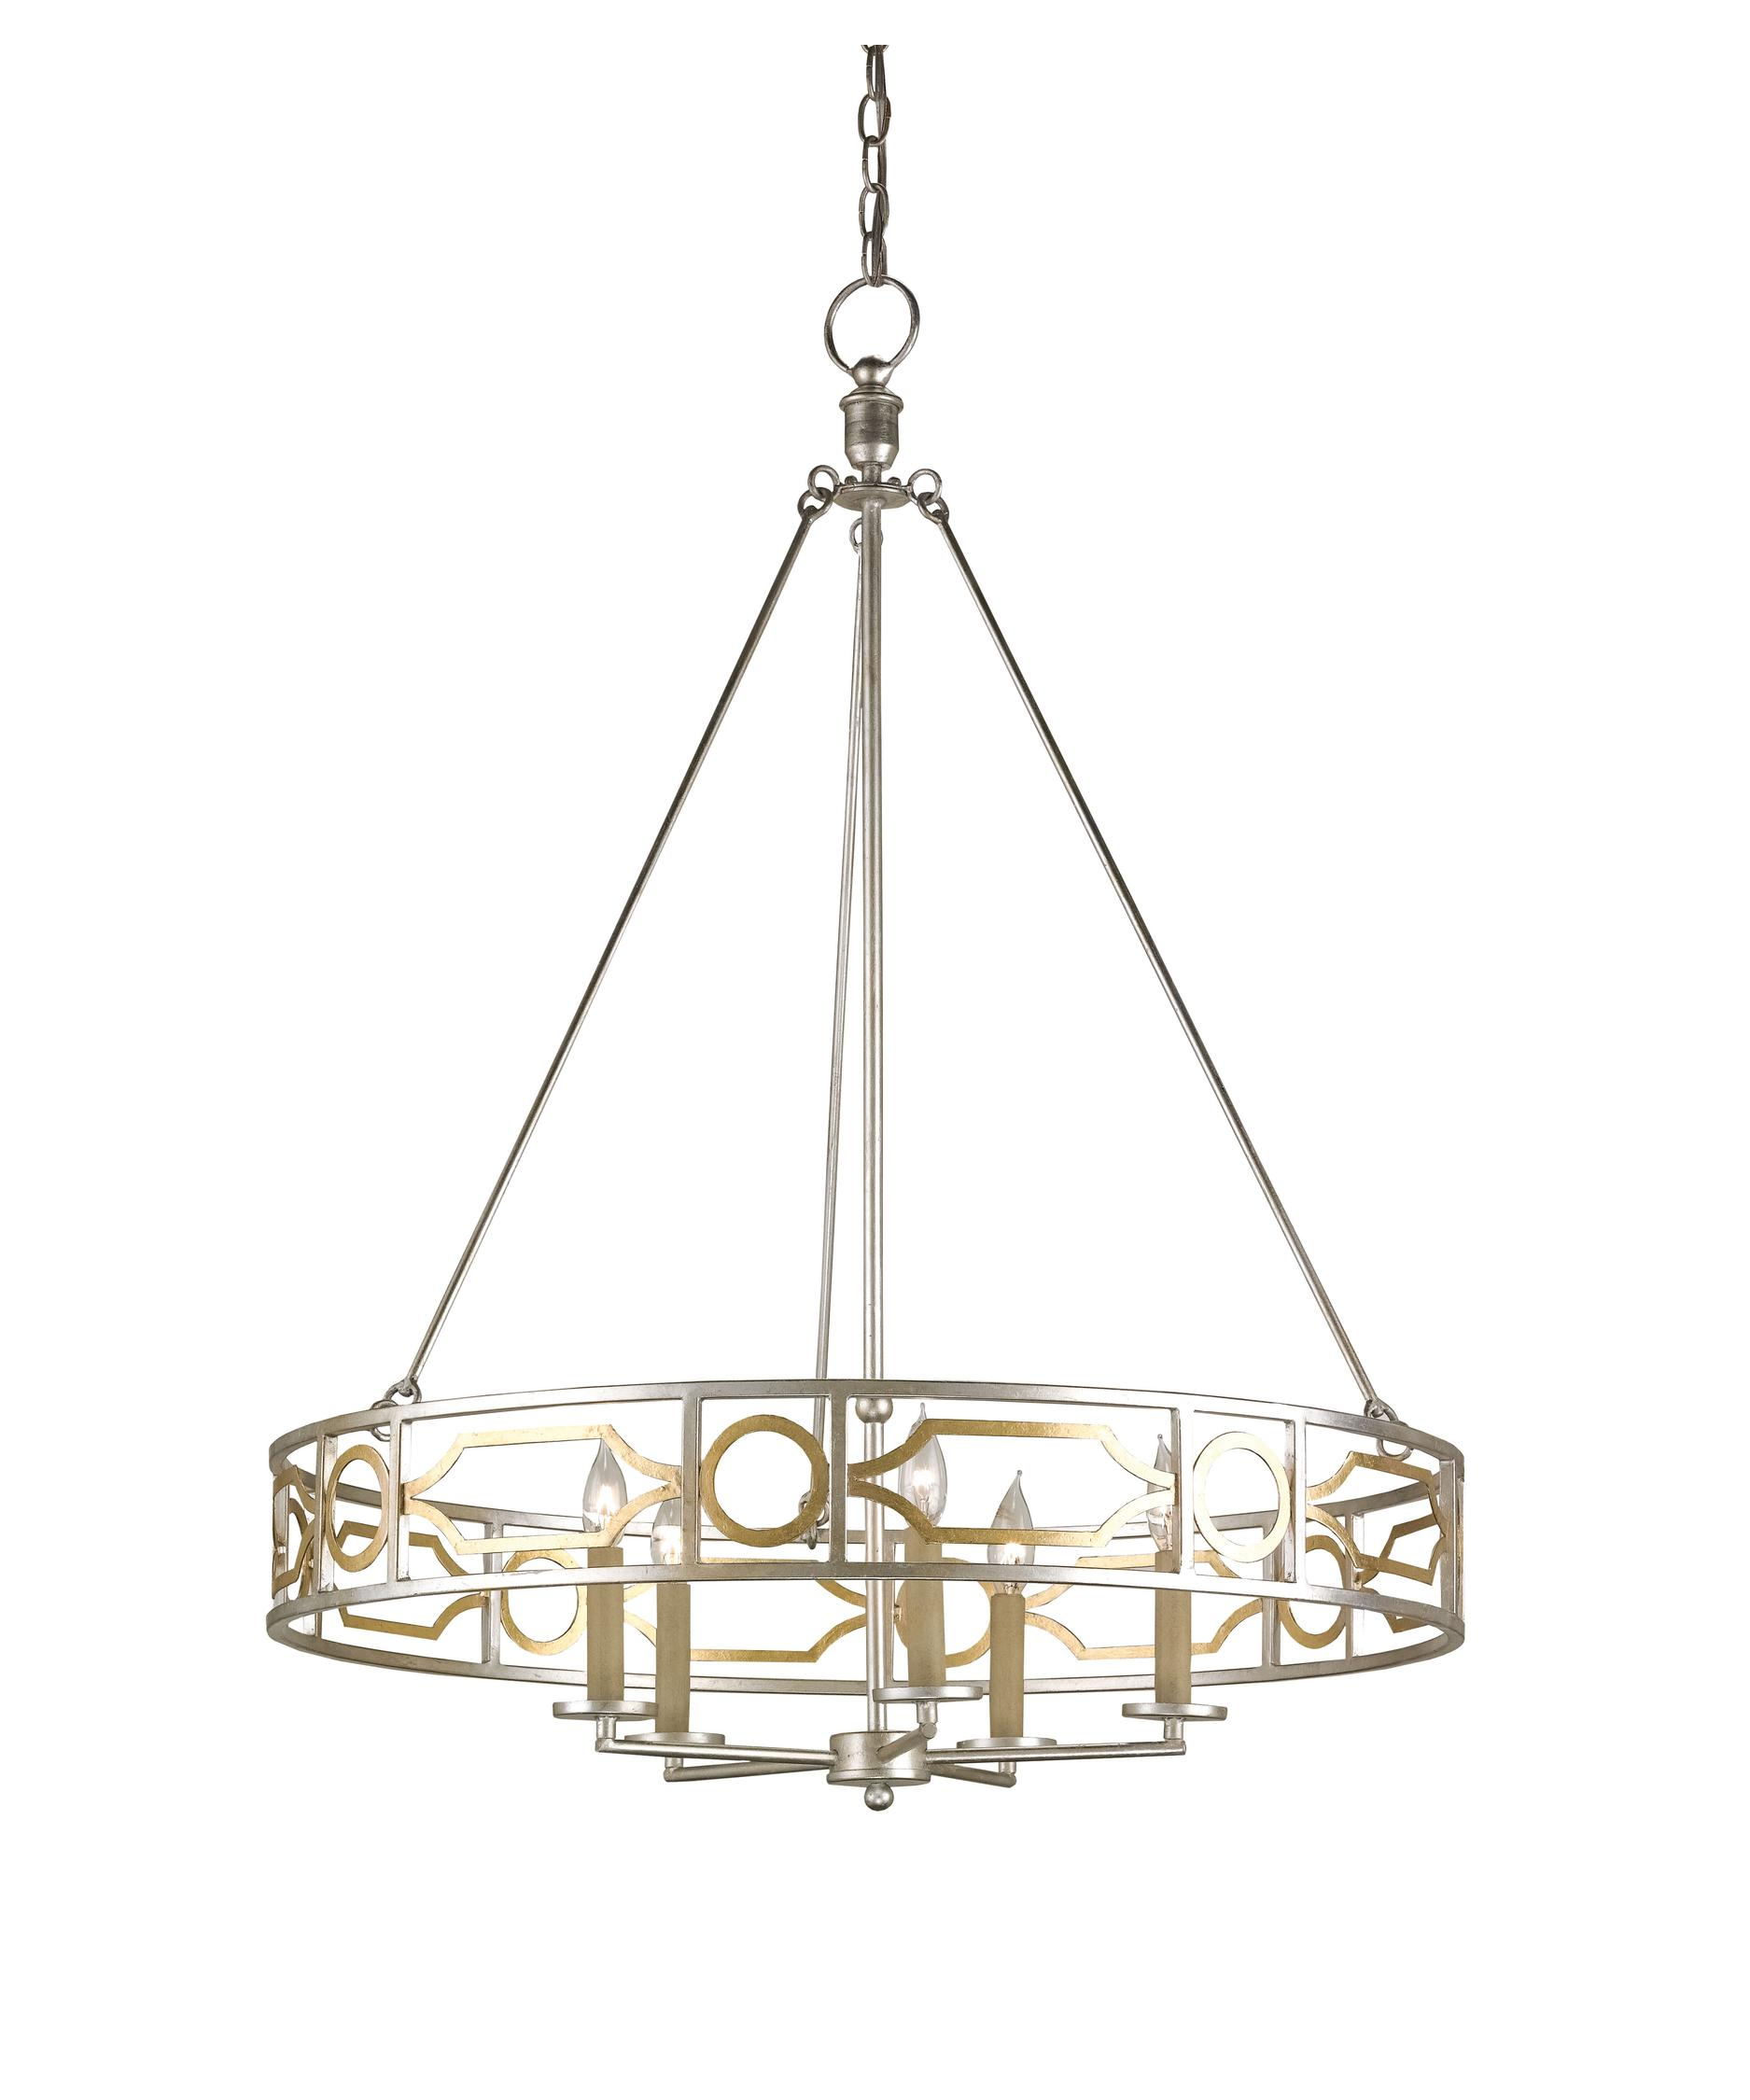 Currey and Company Fairchild by Lillian August Chandelier | Capitol Lighting  1-800lighting.com